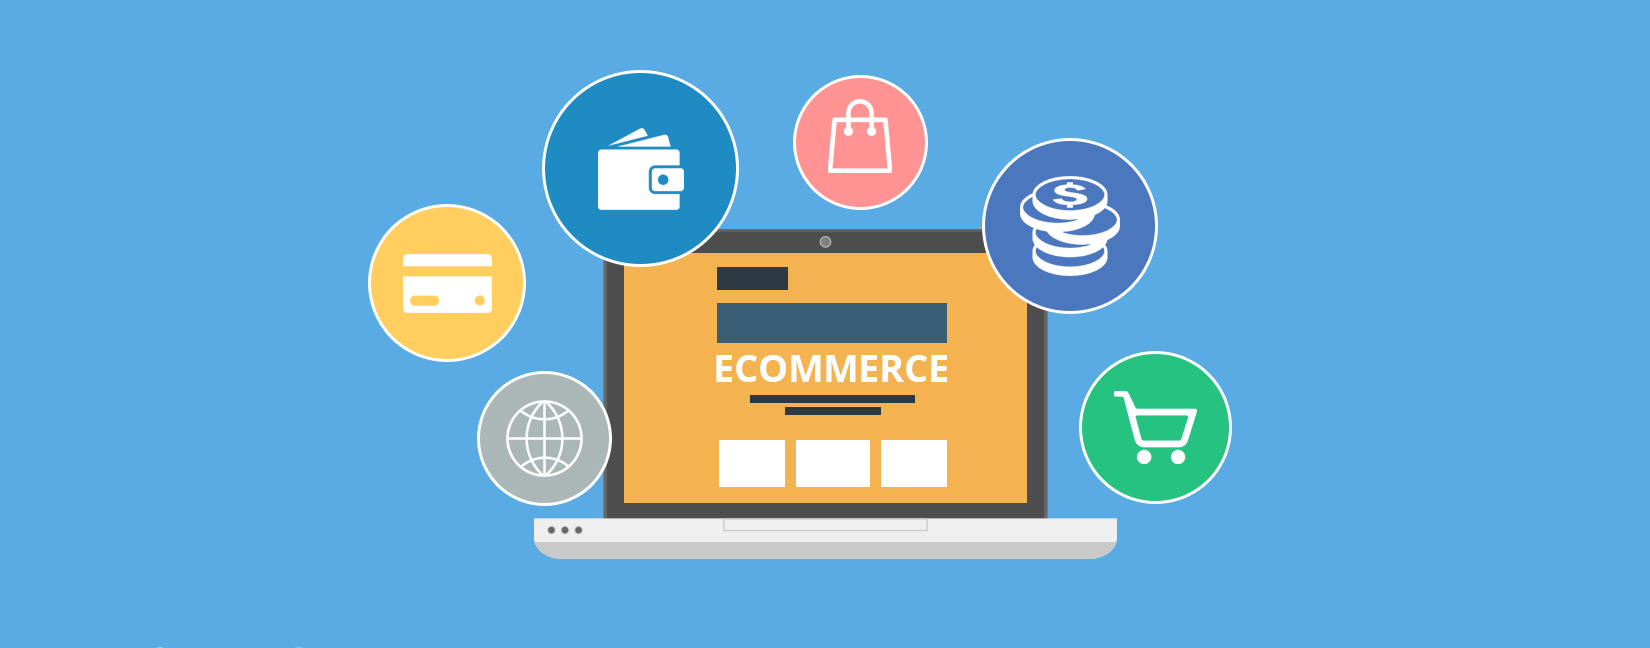 Benefits of eCommerce Integration as an eCommerce owner and Customer